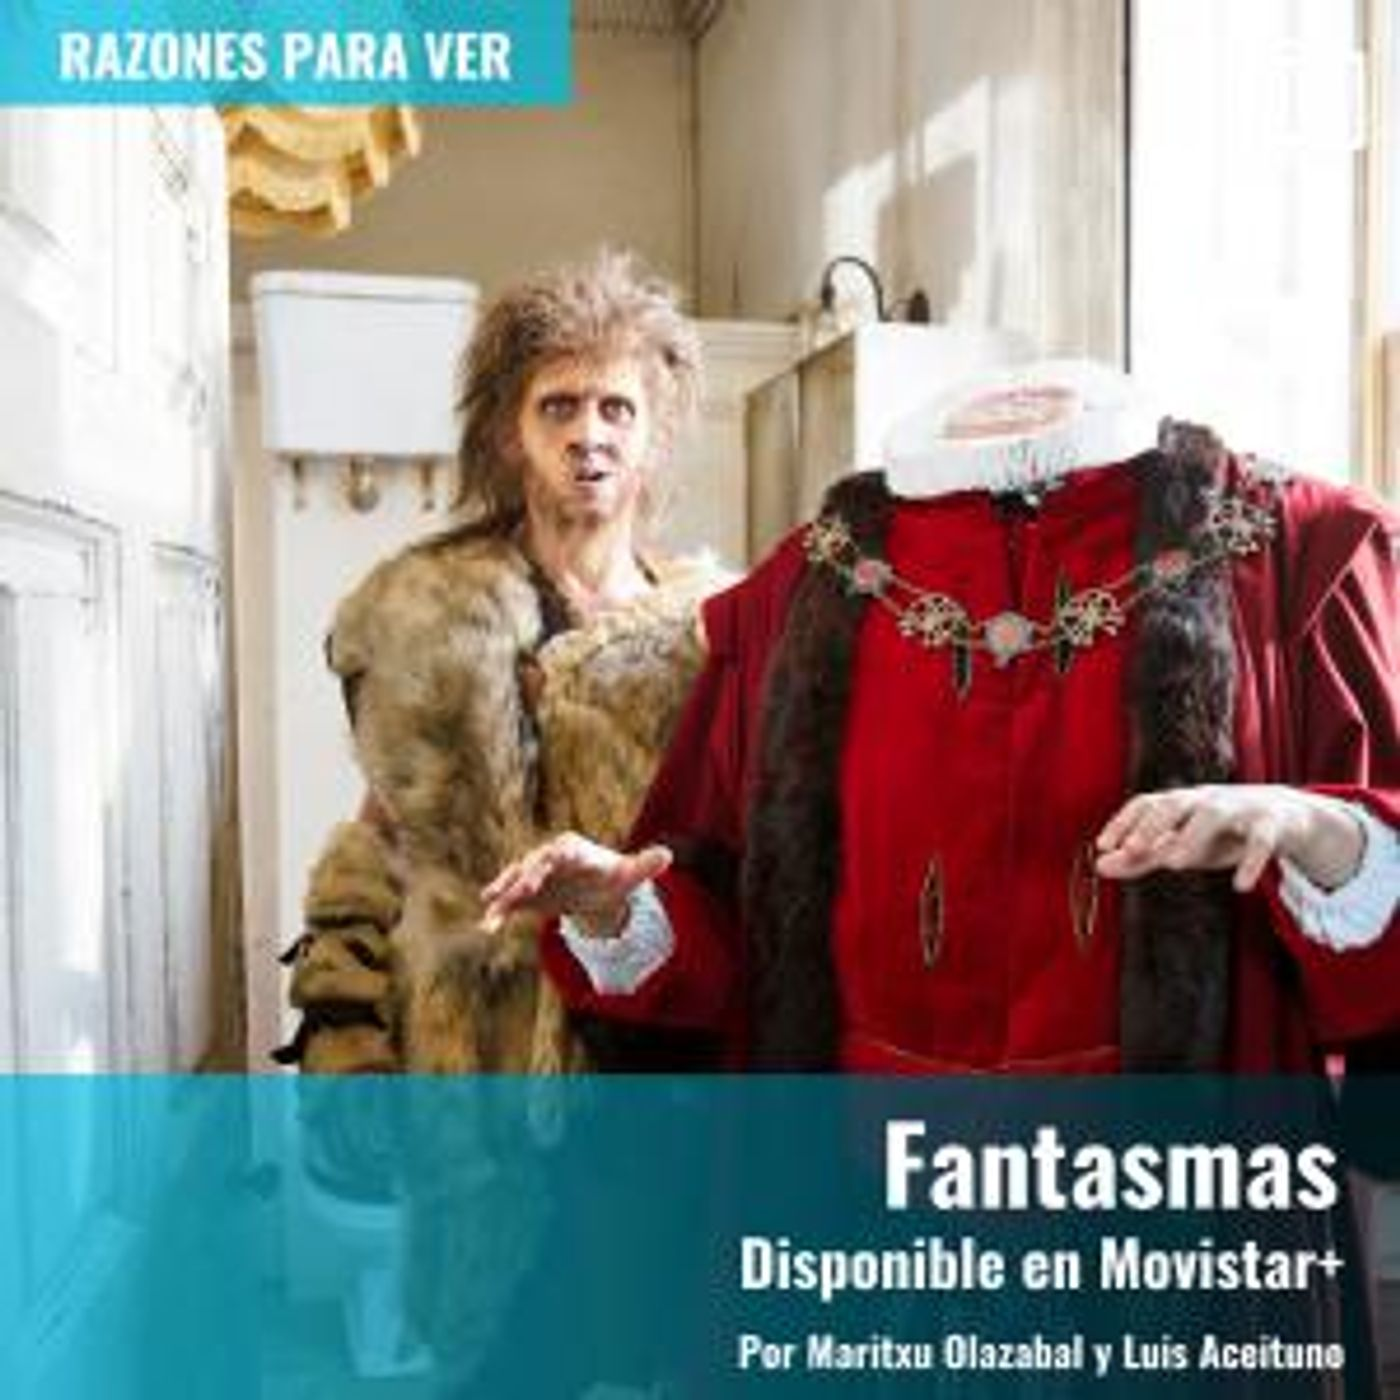 Fantasmas (disponible en Movistar Plus) | Razones para Ver